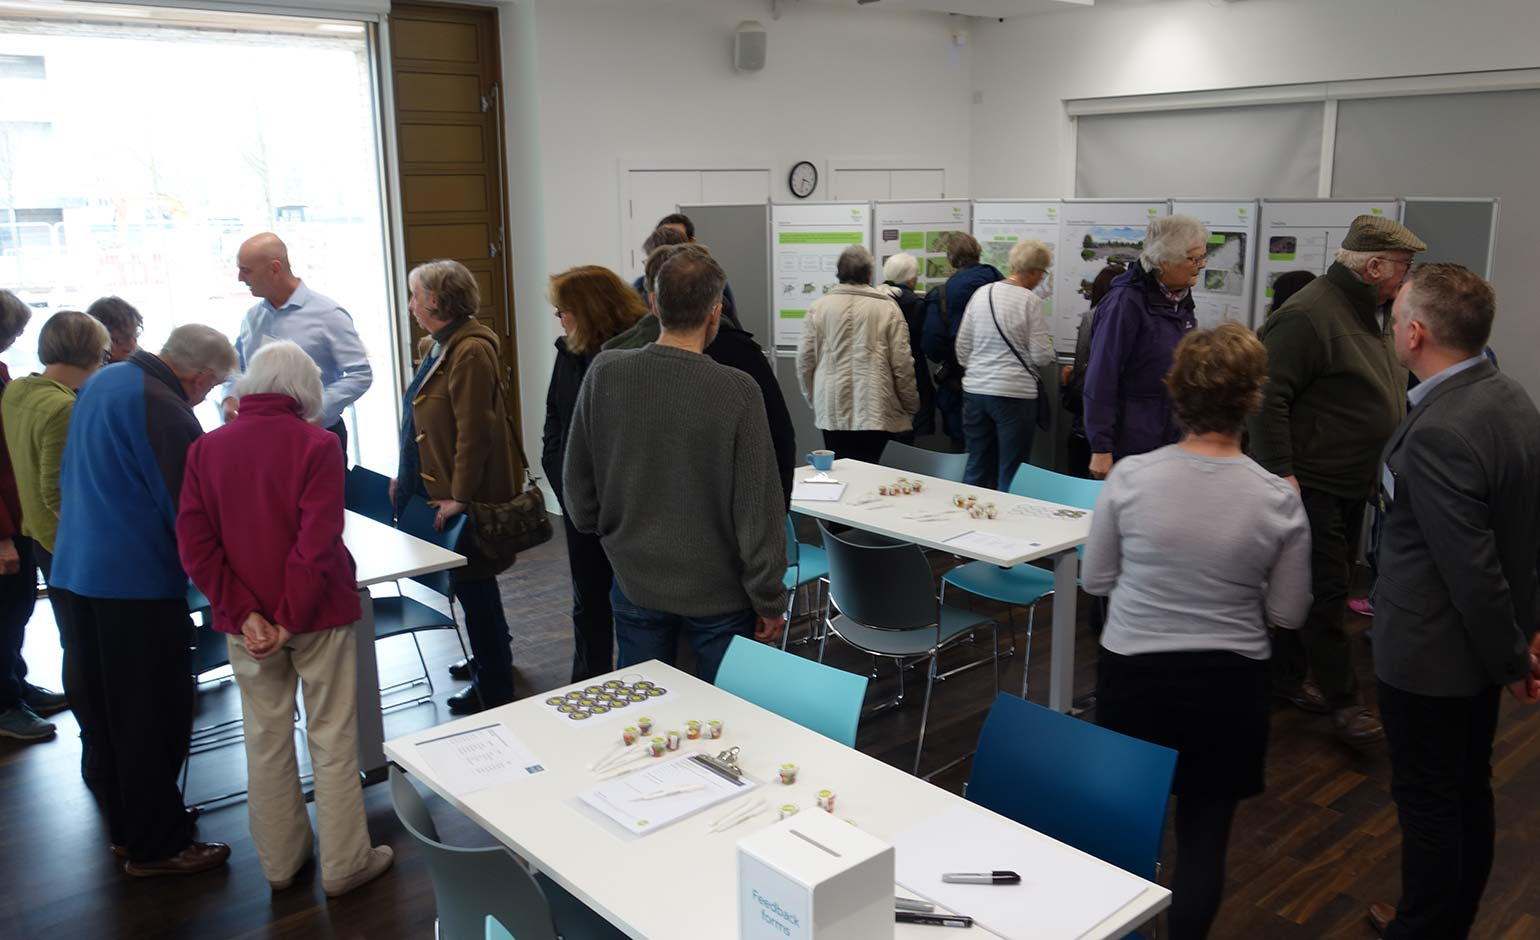 Over 200 people visit exhibition to see proposals for new open space in Bath